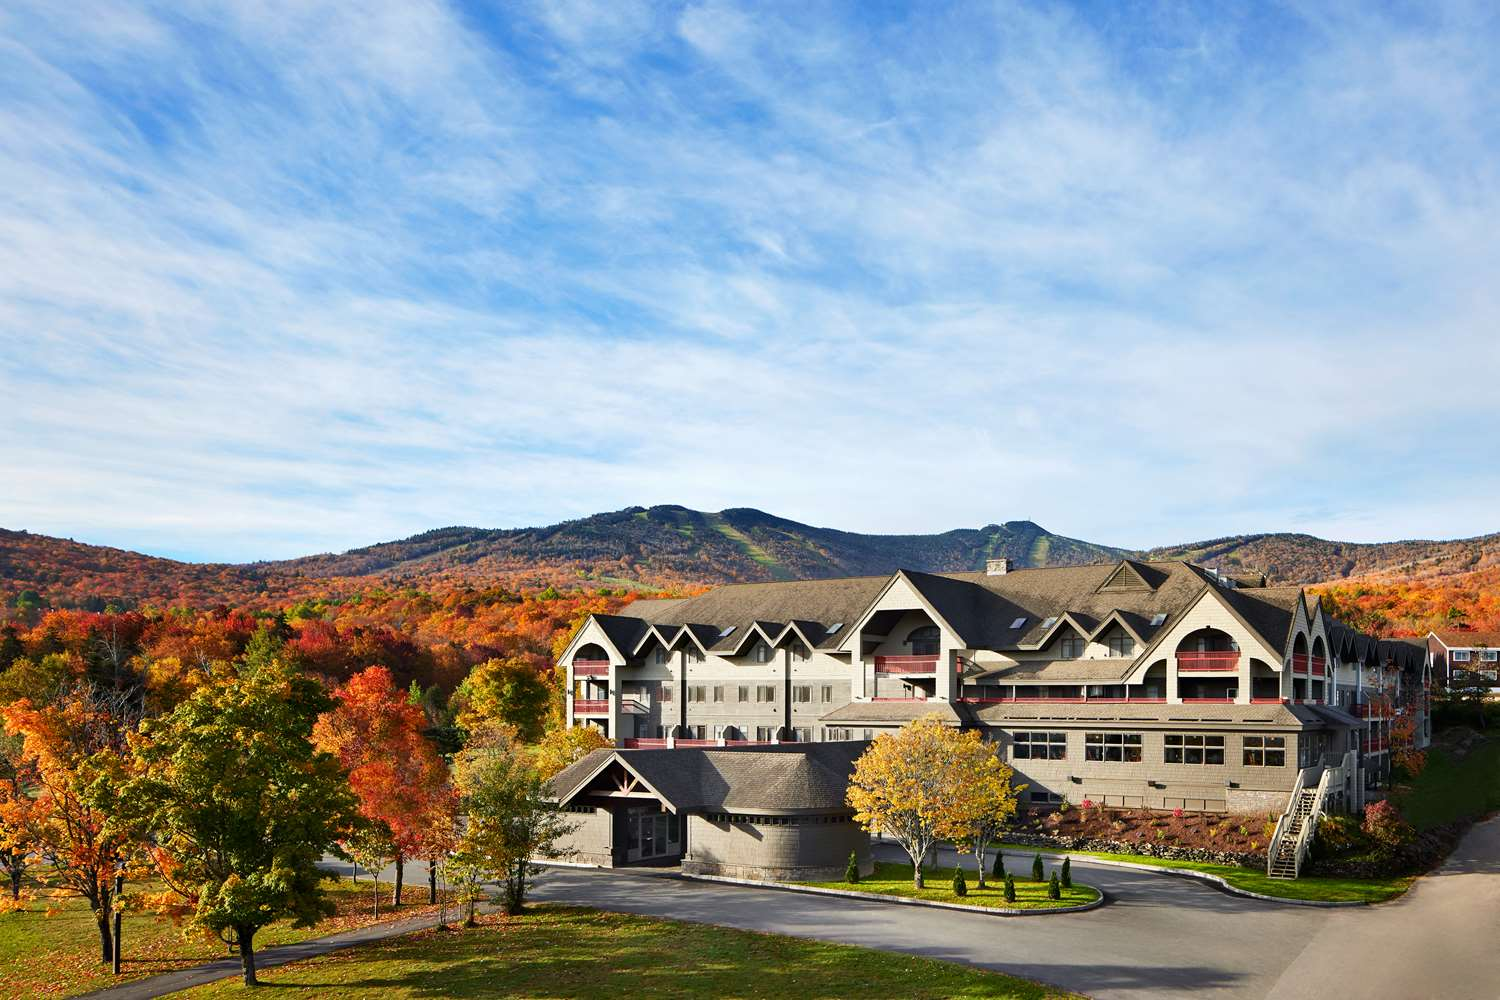 Inn of the Six Mountains Killington